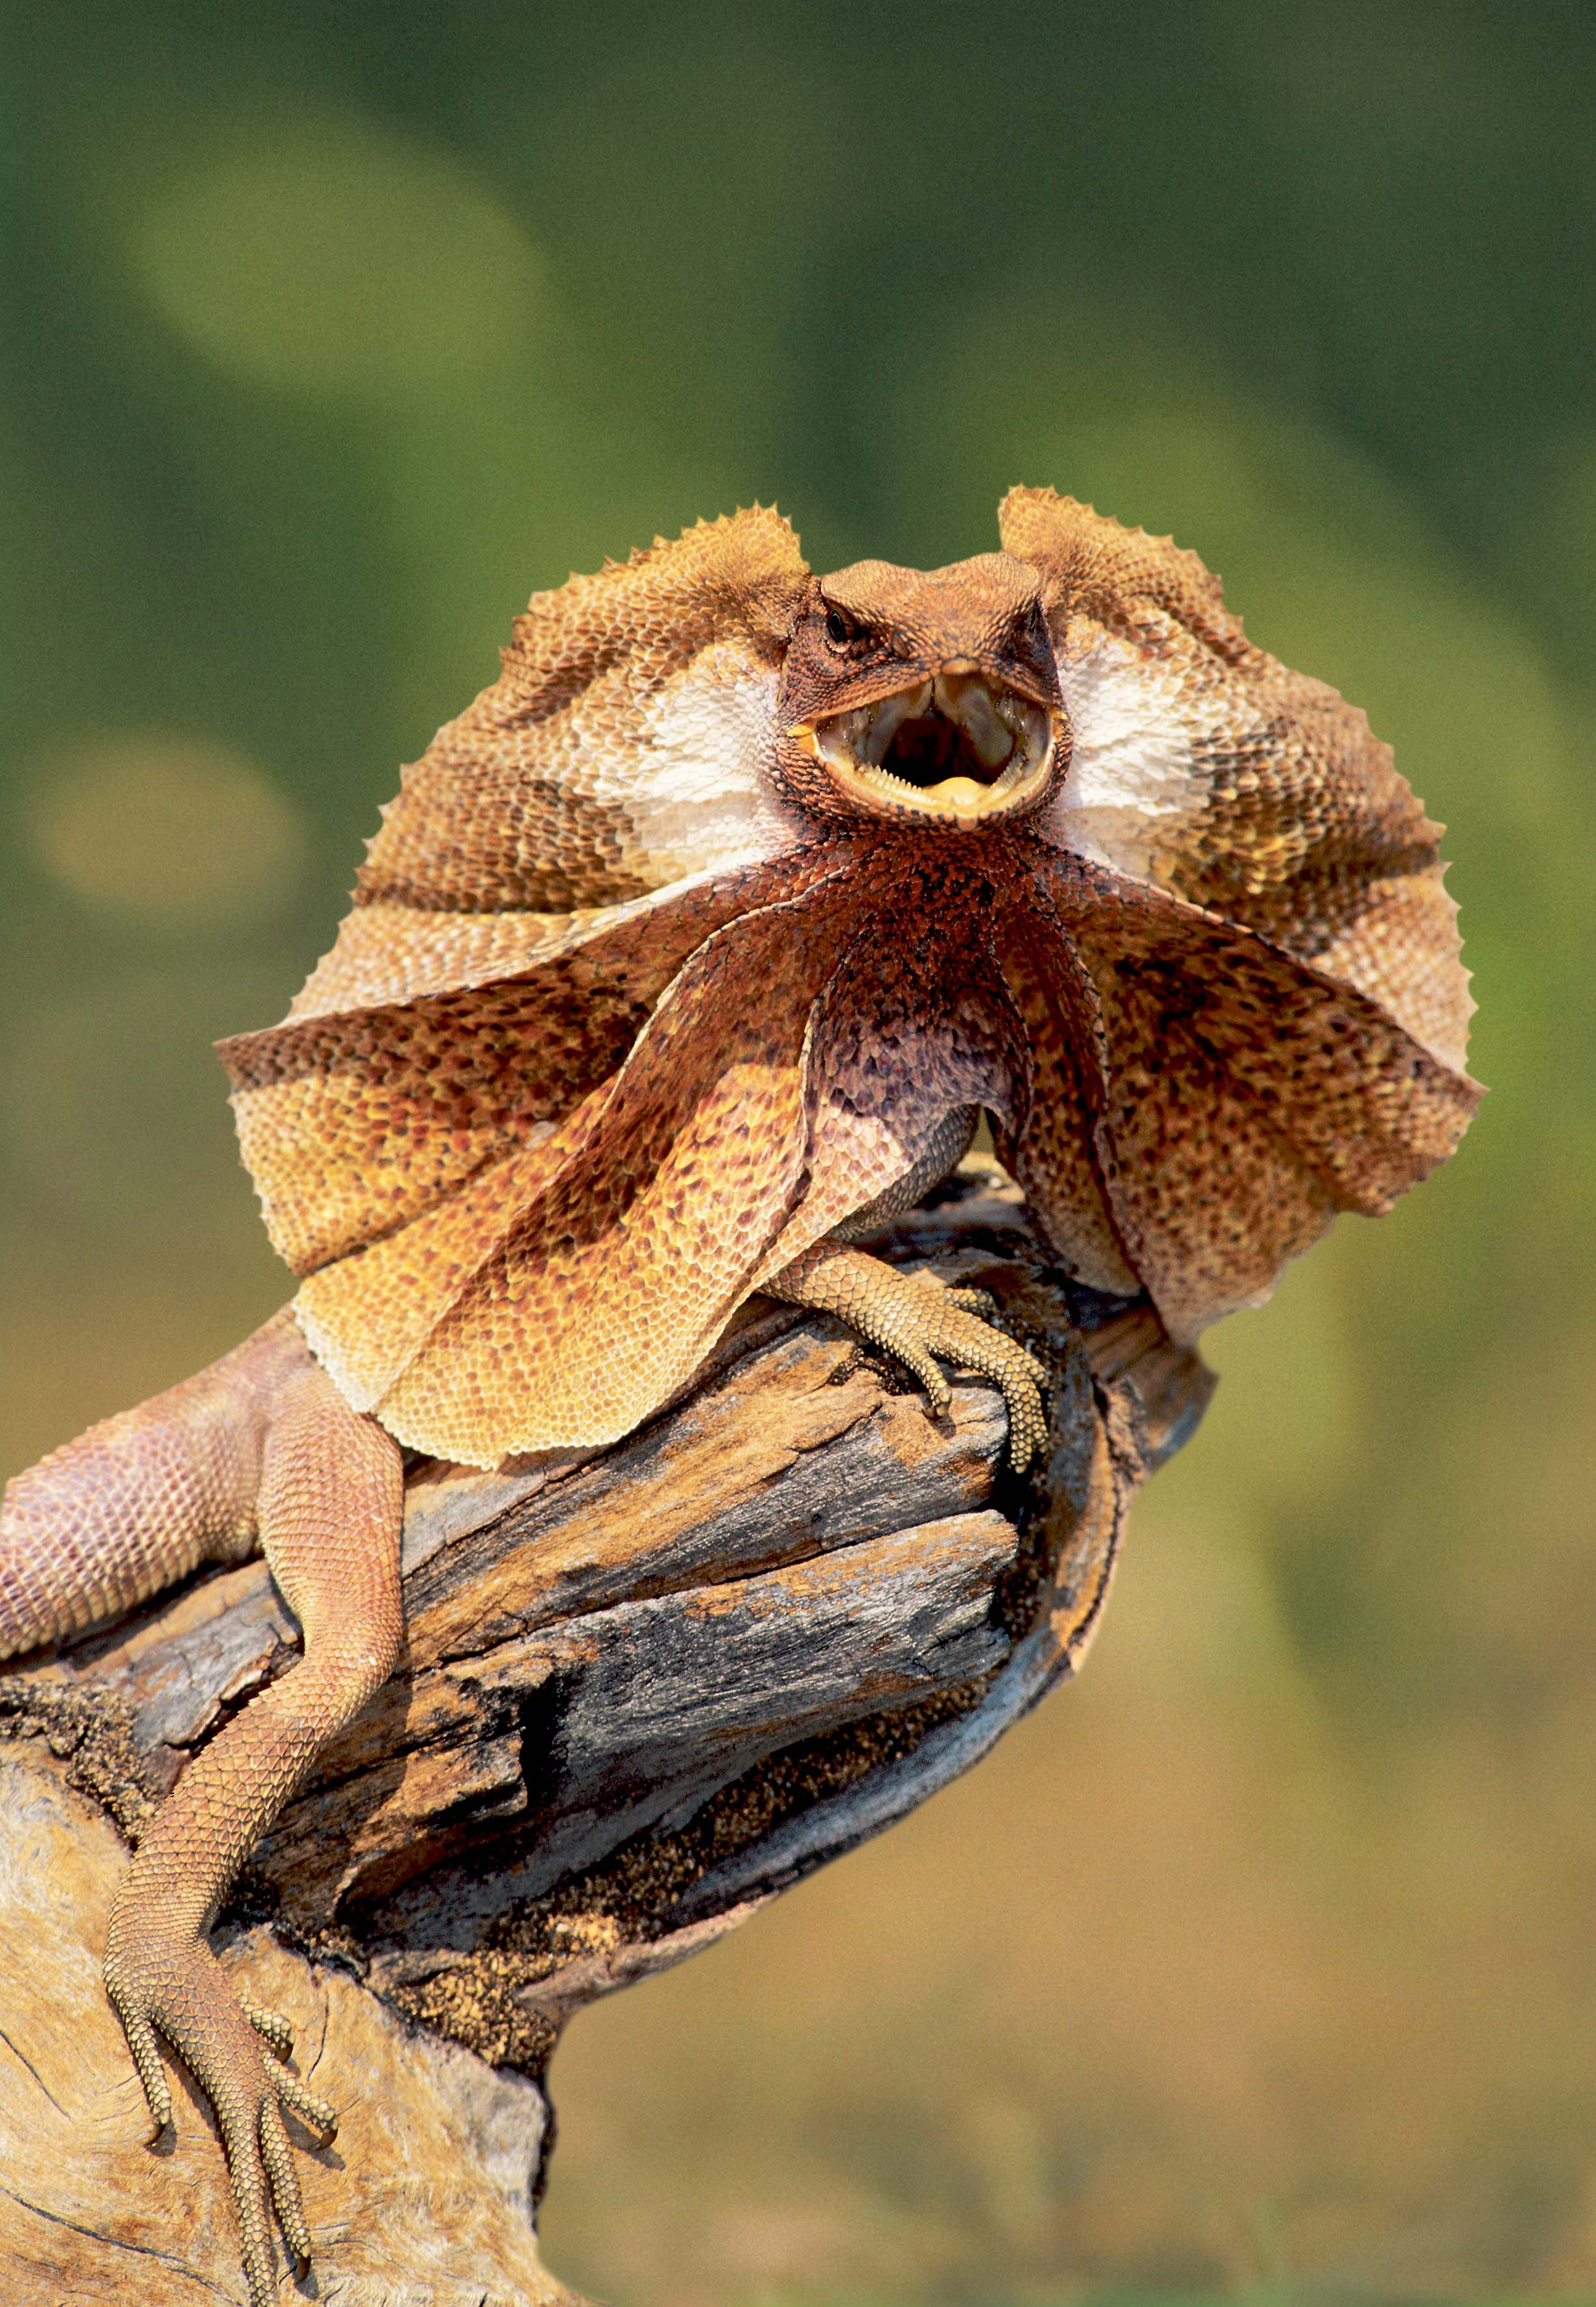 19 facts about frilled-neck lizards you may not have known | Animalogic